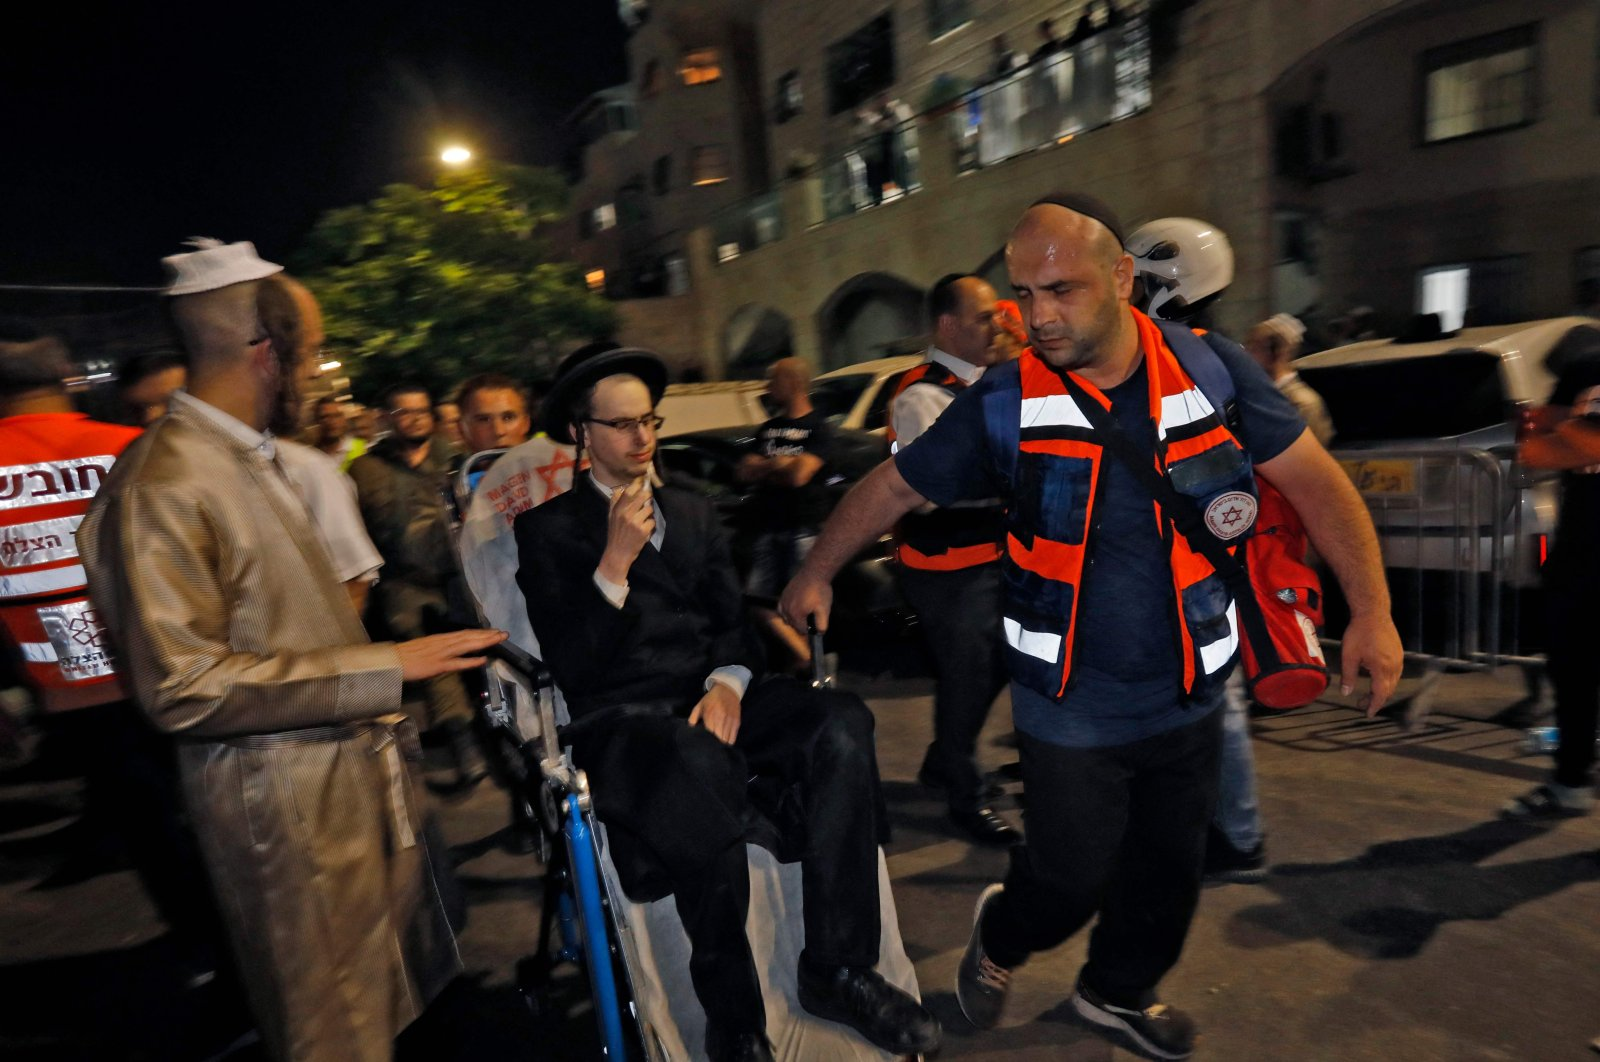 Israeli medics evacuate an injured an ultra-Orthodox Jewish man after the collapse of grandstand seating at a synagogue in the Israeli settlement of Givat Zeev in the occupied West Bank outside Jerusalem, on May 16, 2021. (AFP Photo)